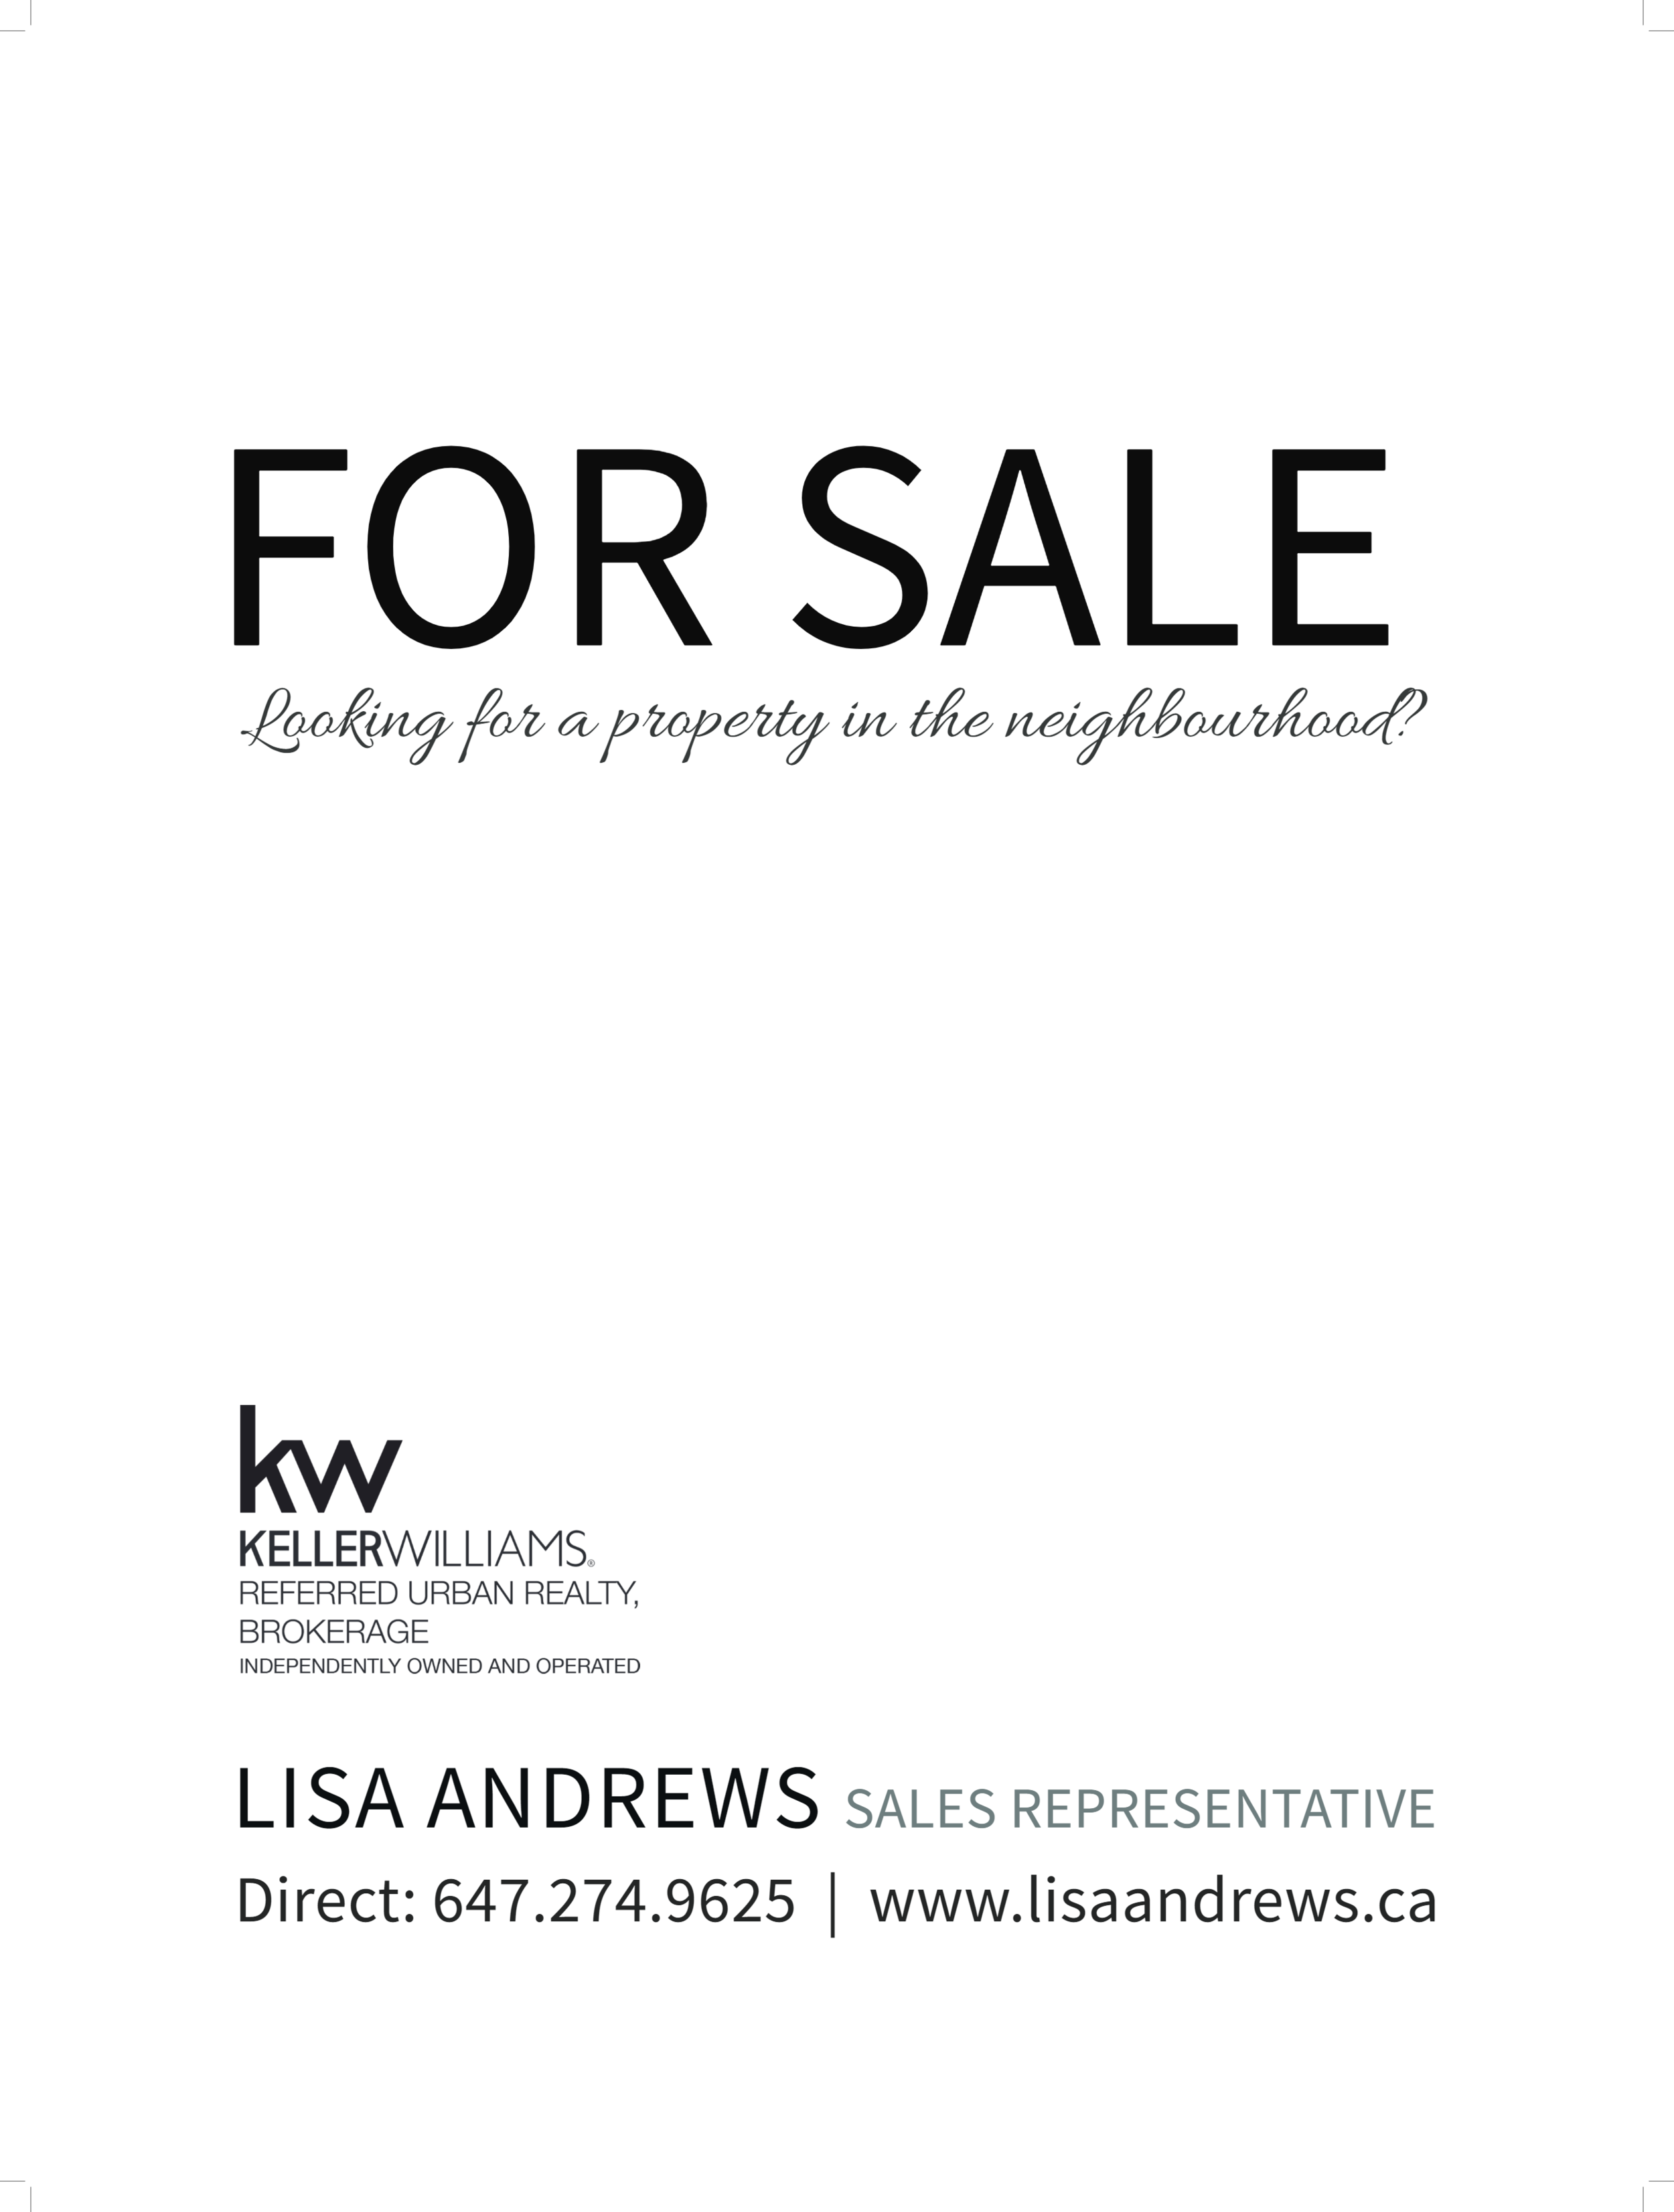 [Page-1] 03fKWforsalesign.pdf.png